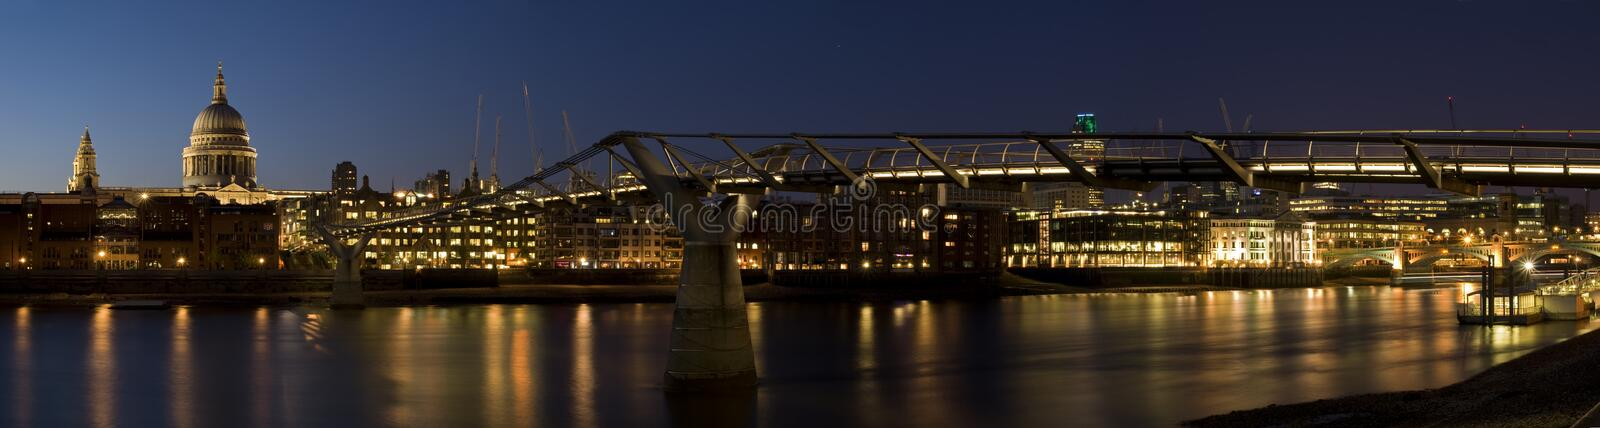 HUGE-St Paul's Cathedral at night royalty free stock image